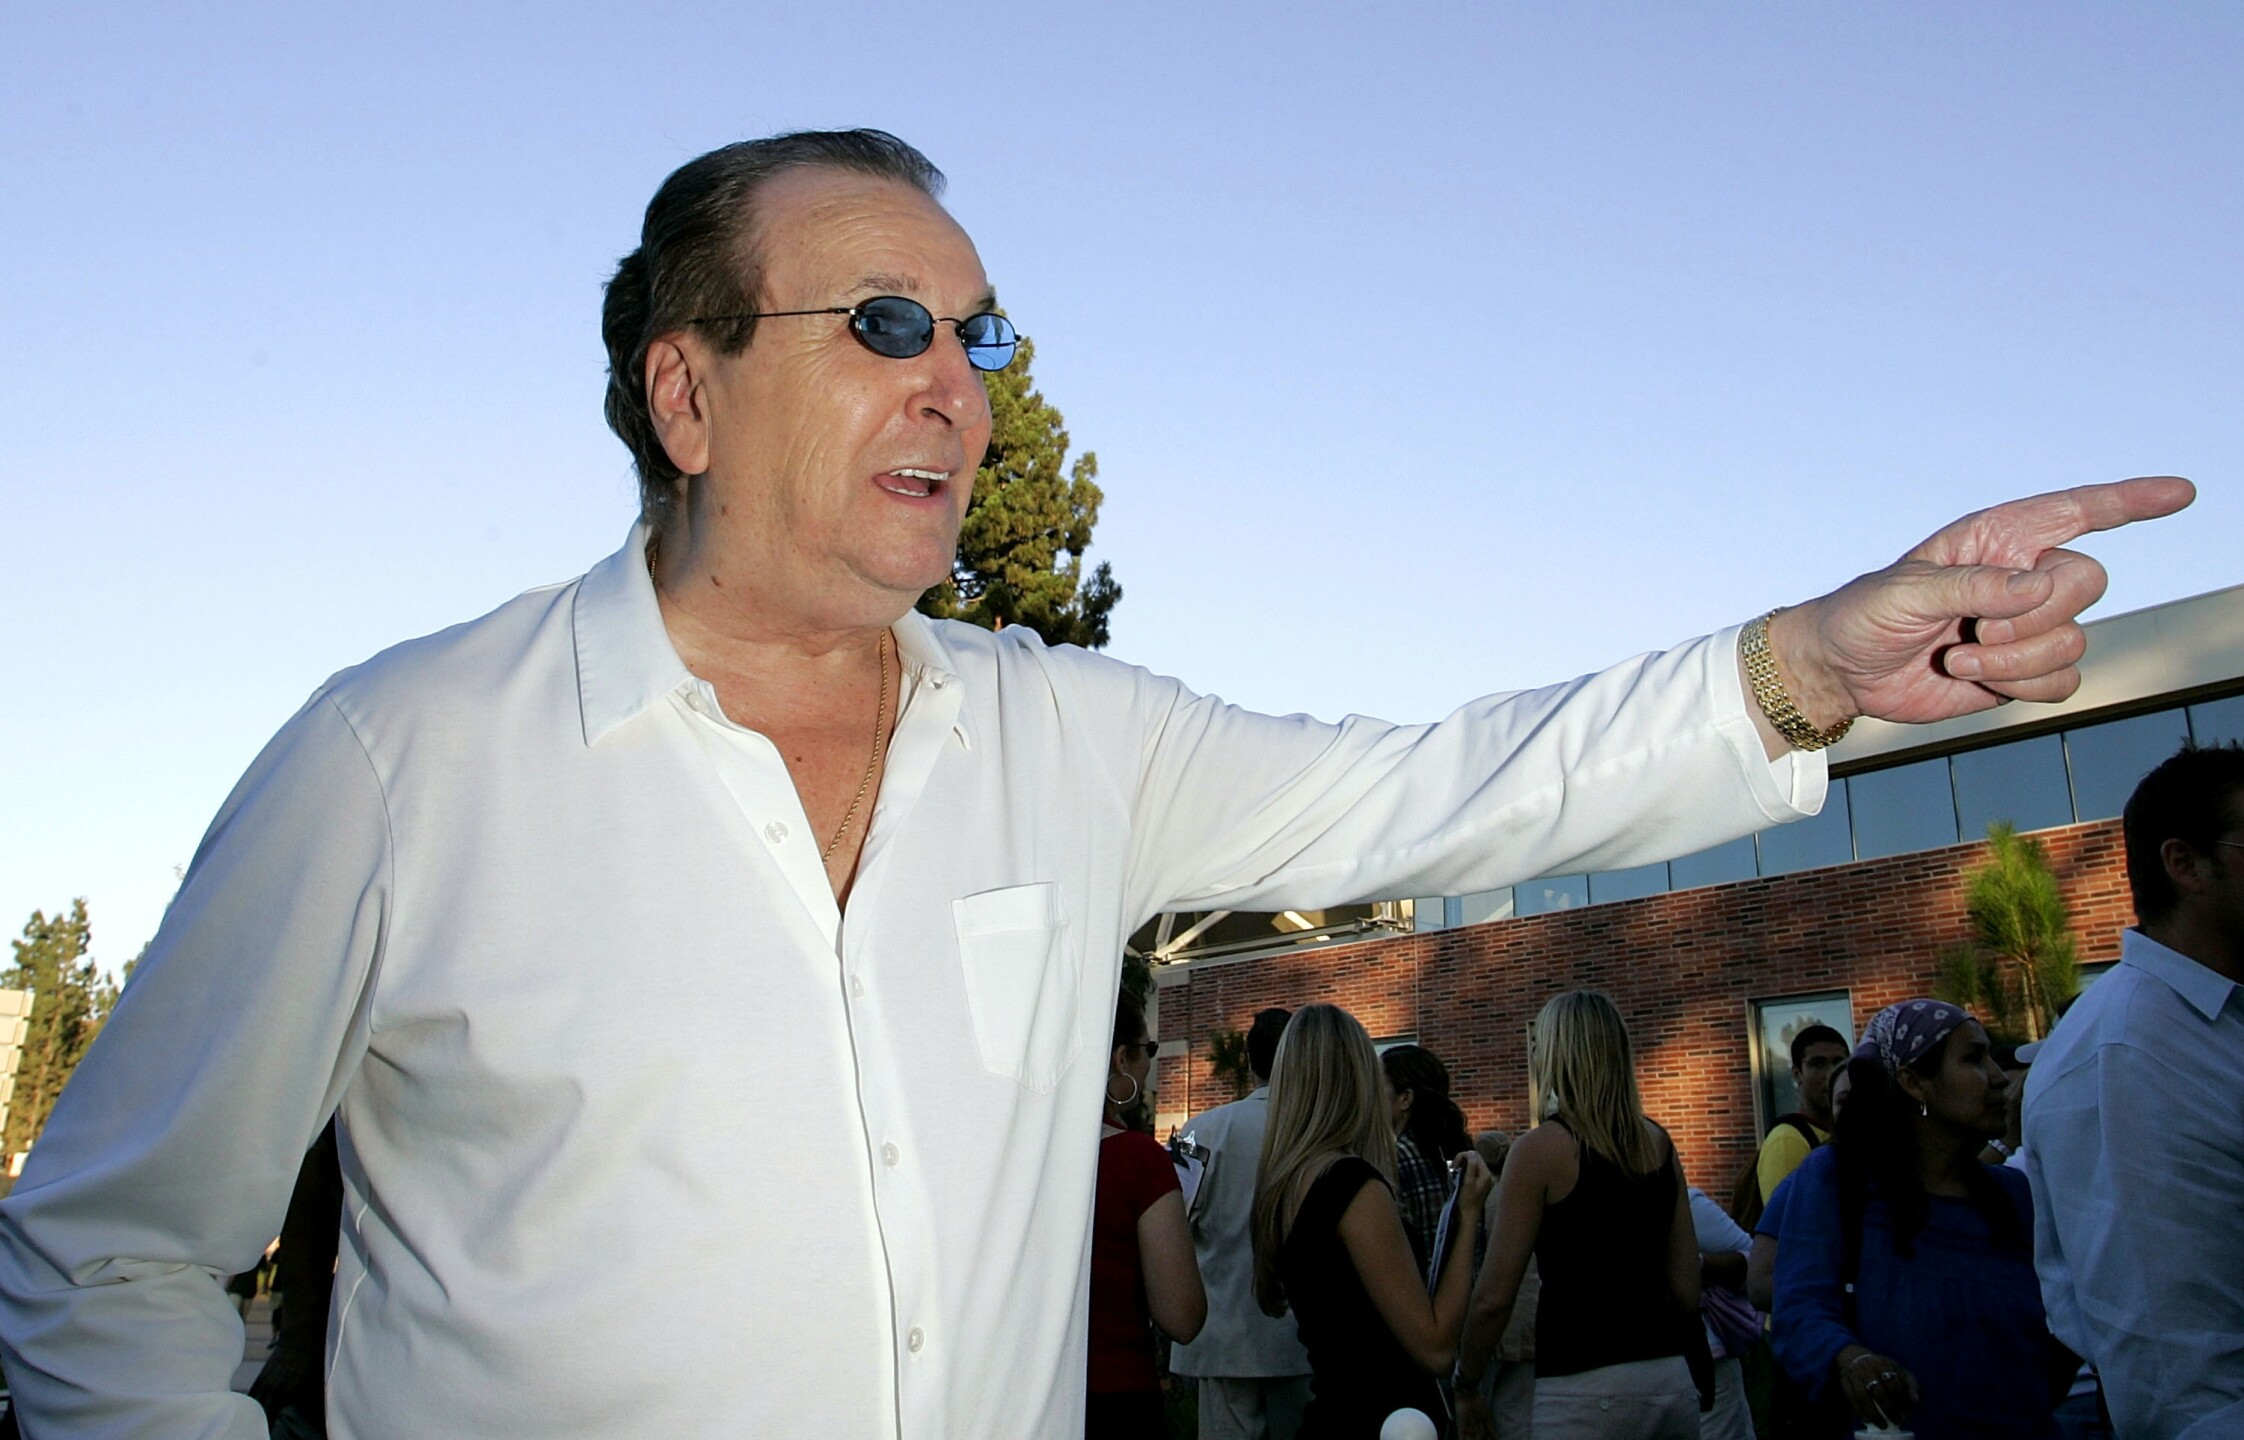 Photos: 'Do the Right Thing' actor Danny Aiello dies at 86